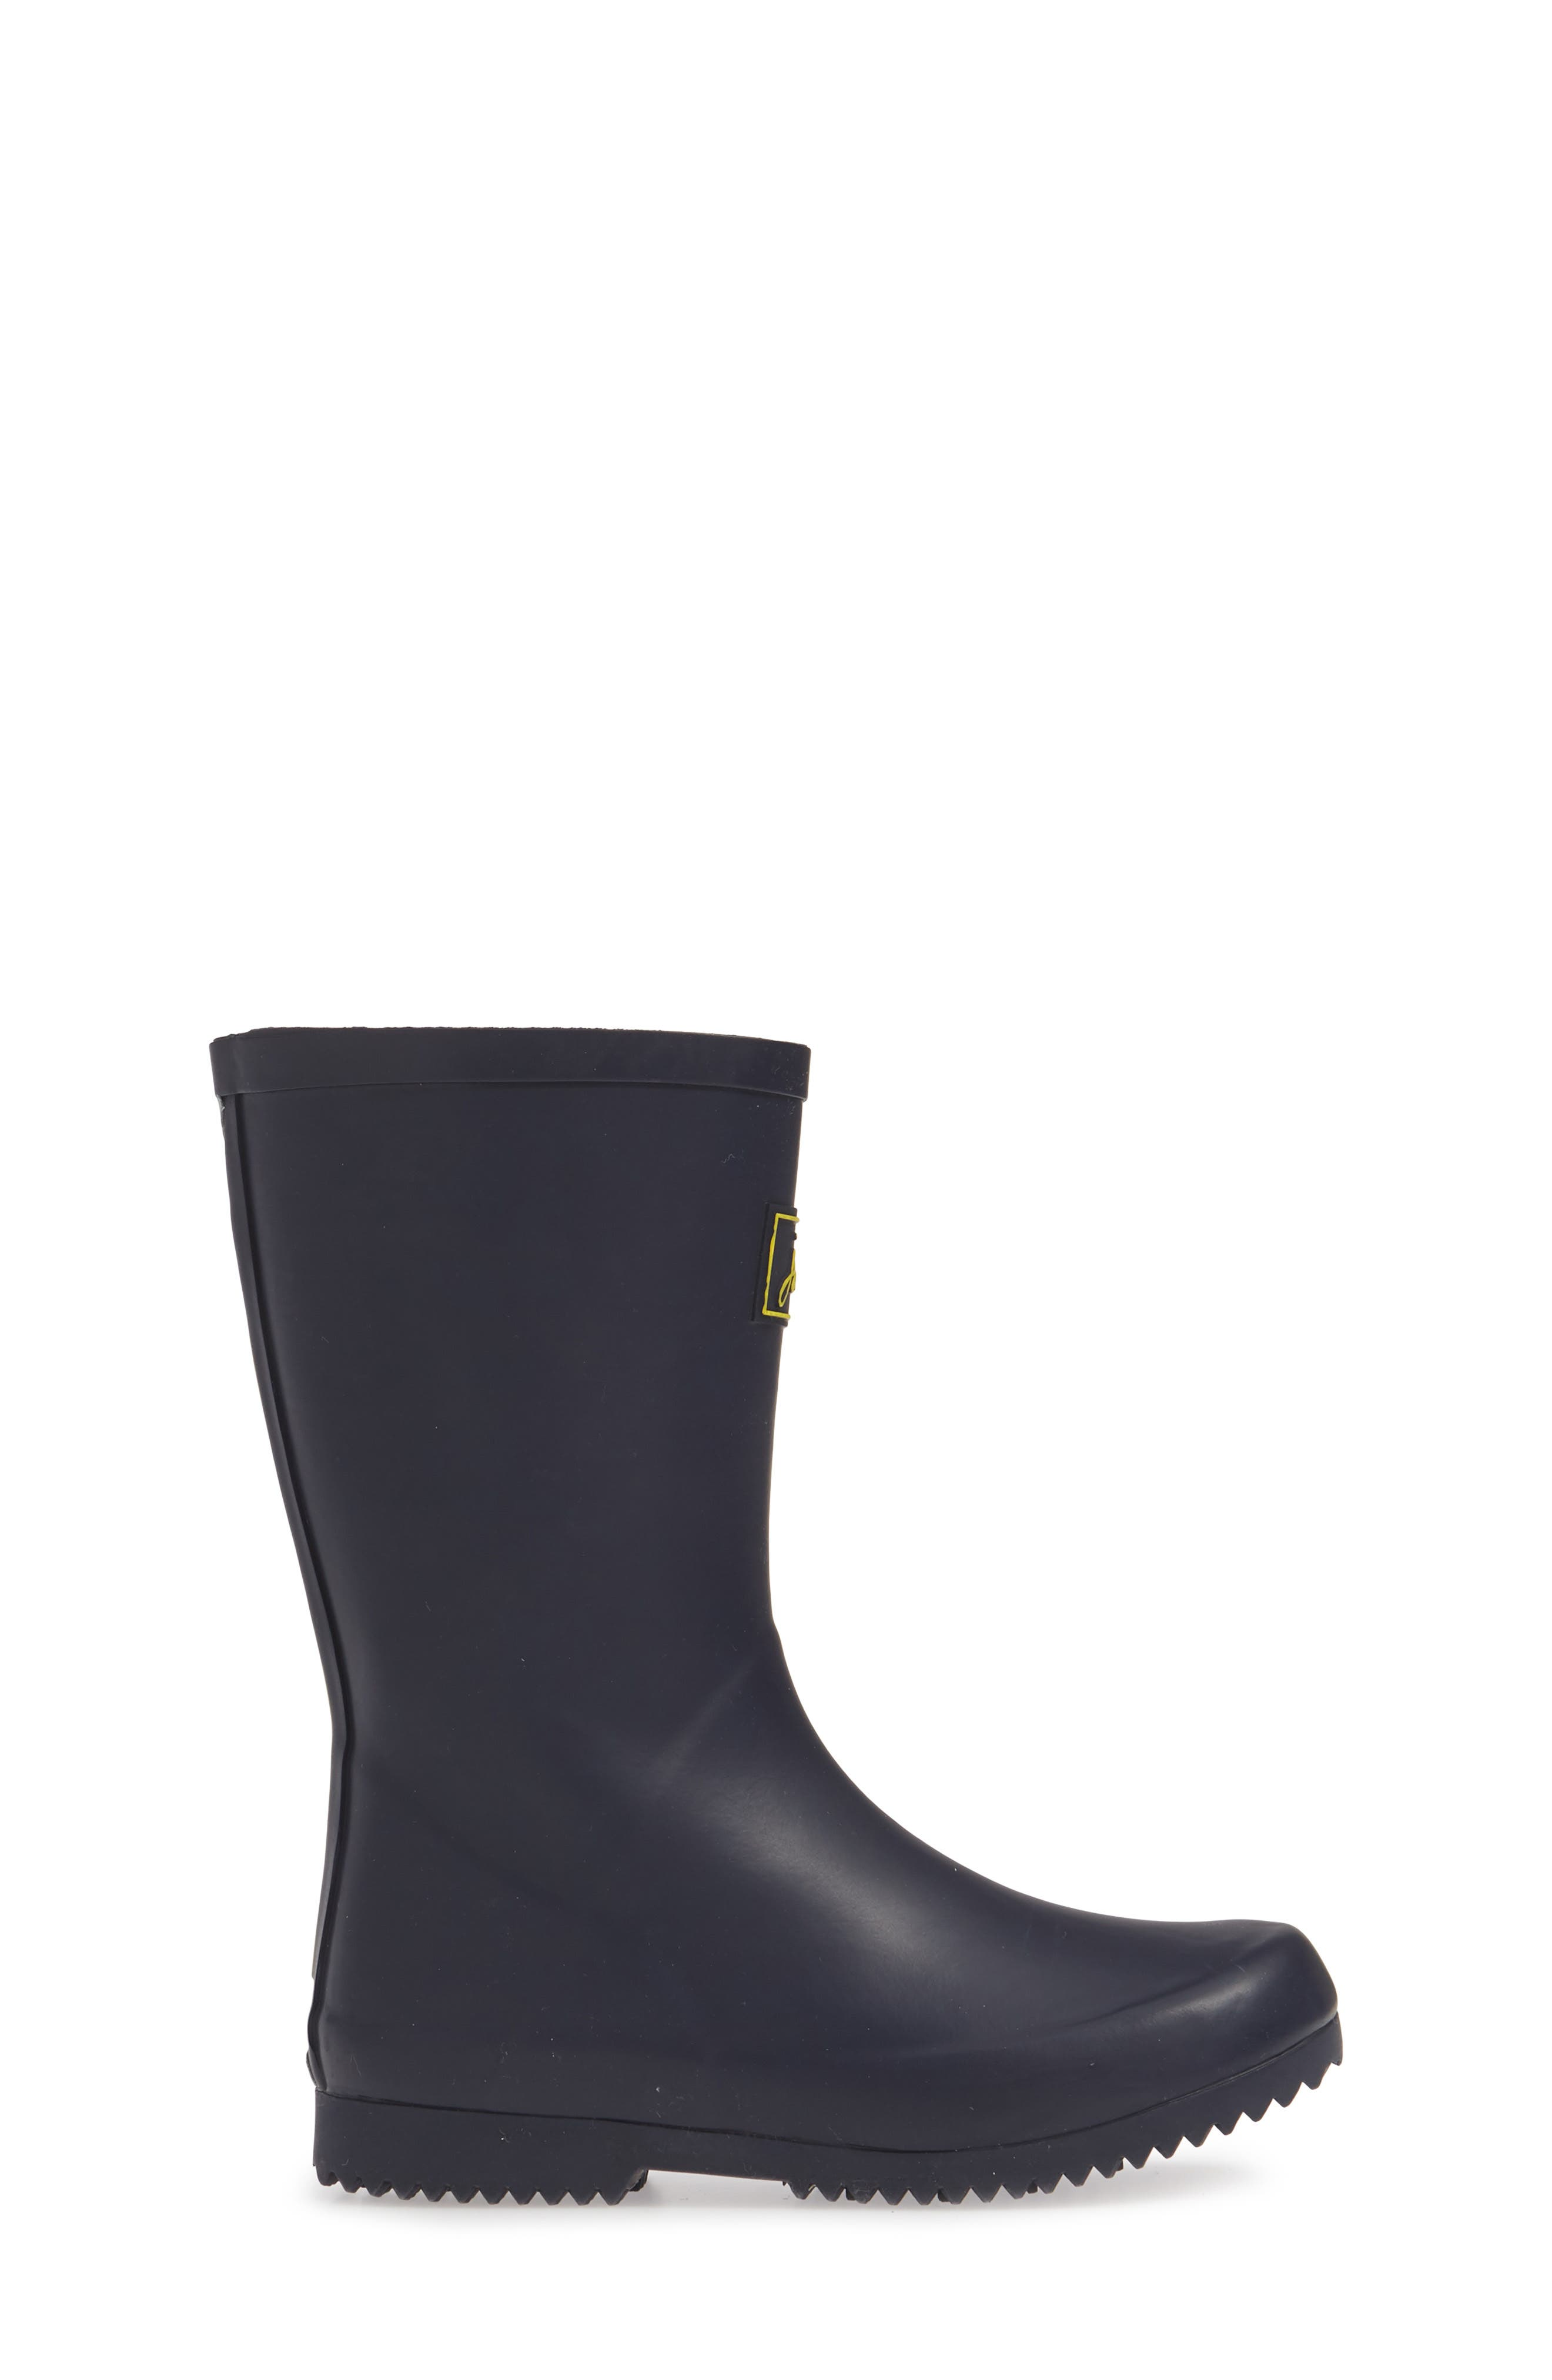 JOULES, Roll Up Waterproof Rain Boot, Alternate thumbnail 3, color, FRENCH NAVY